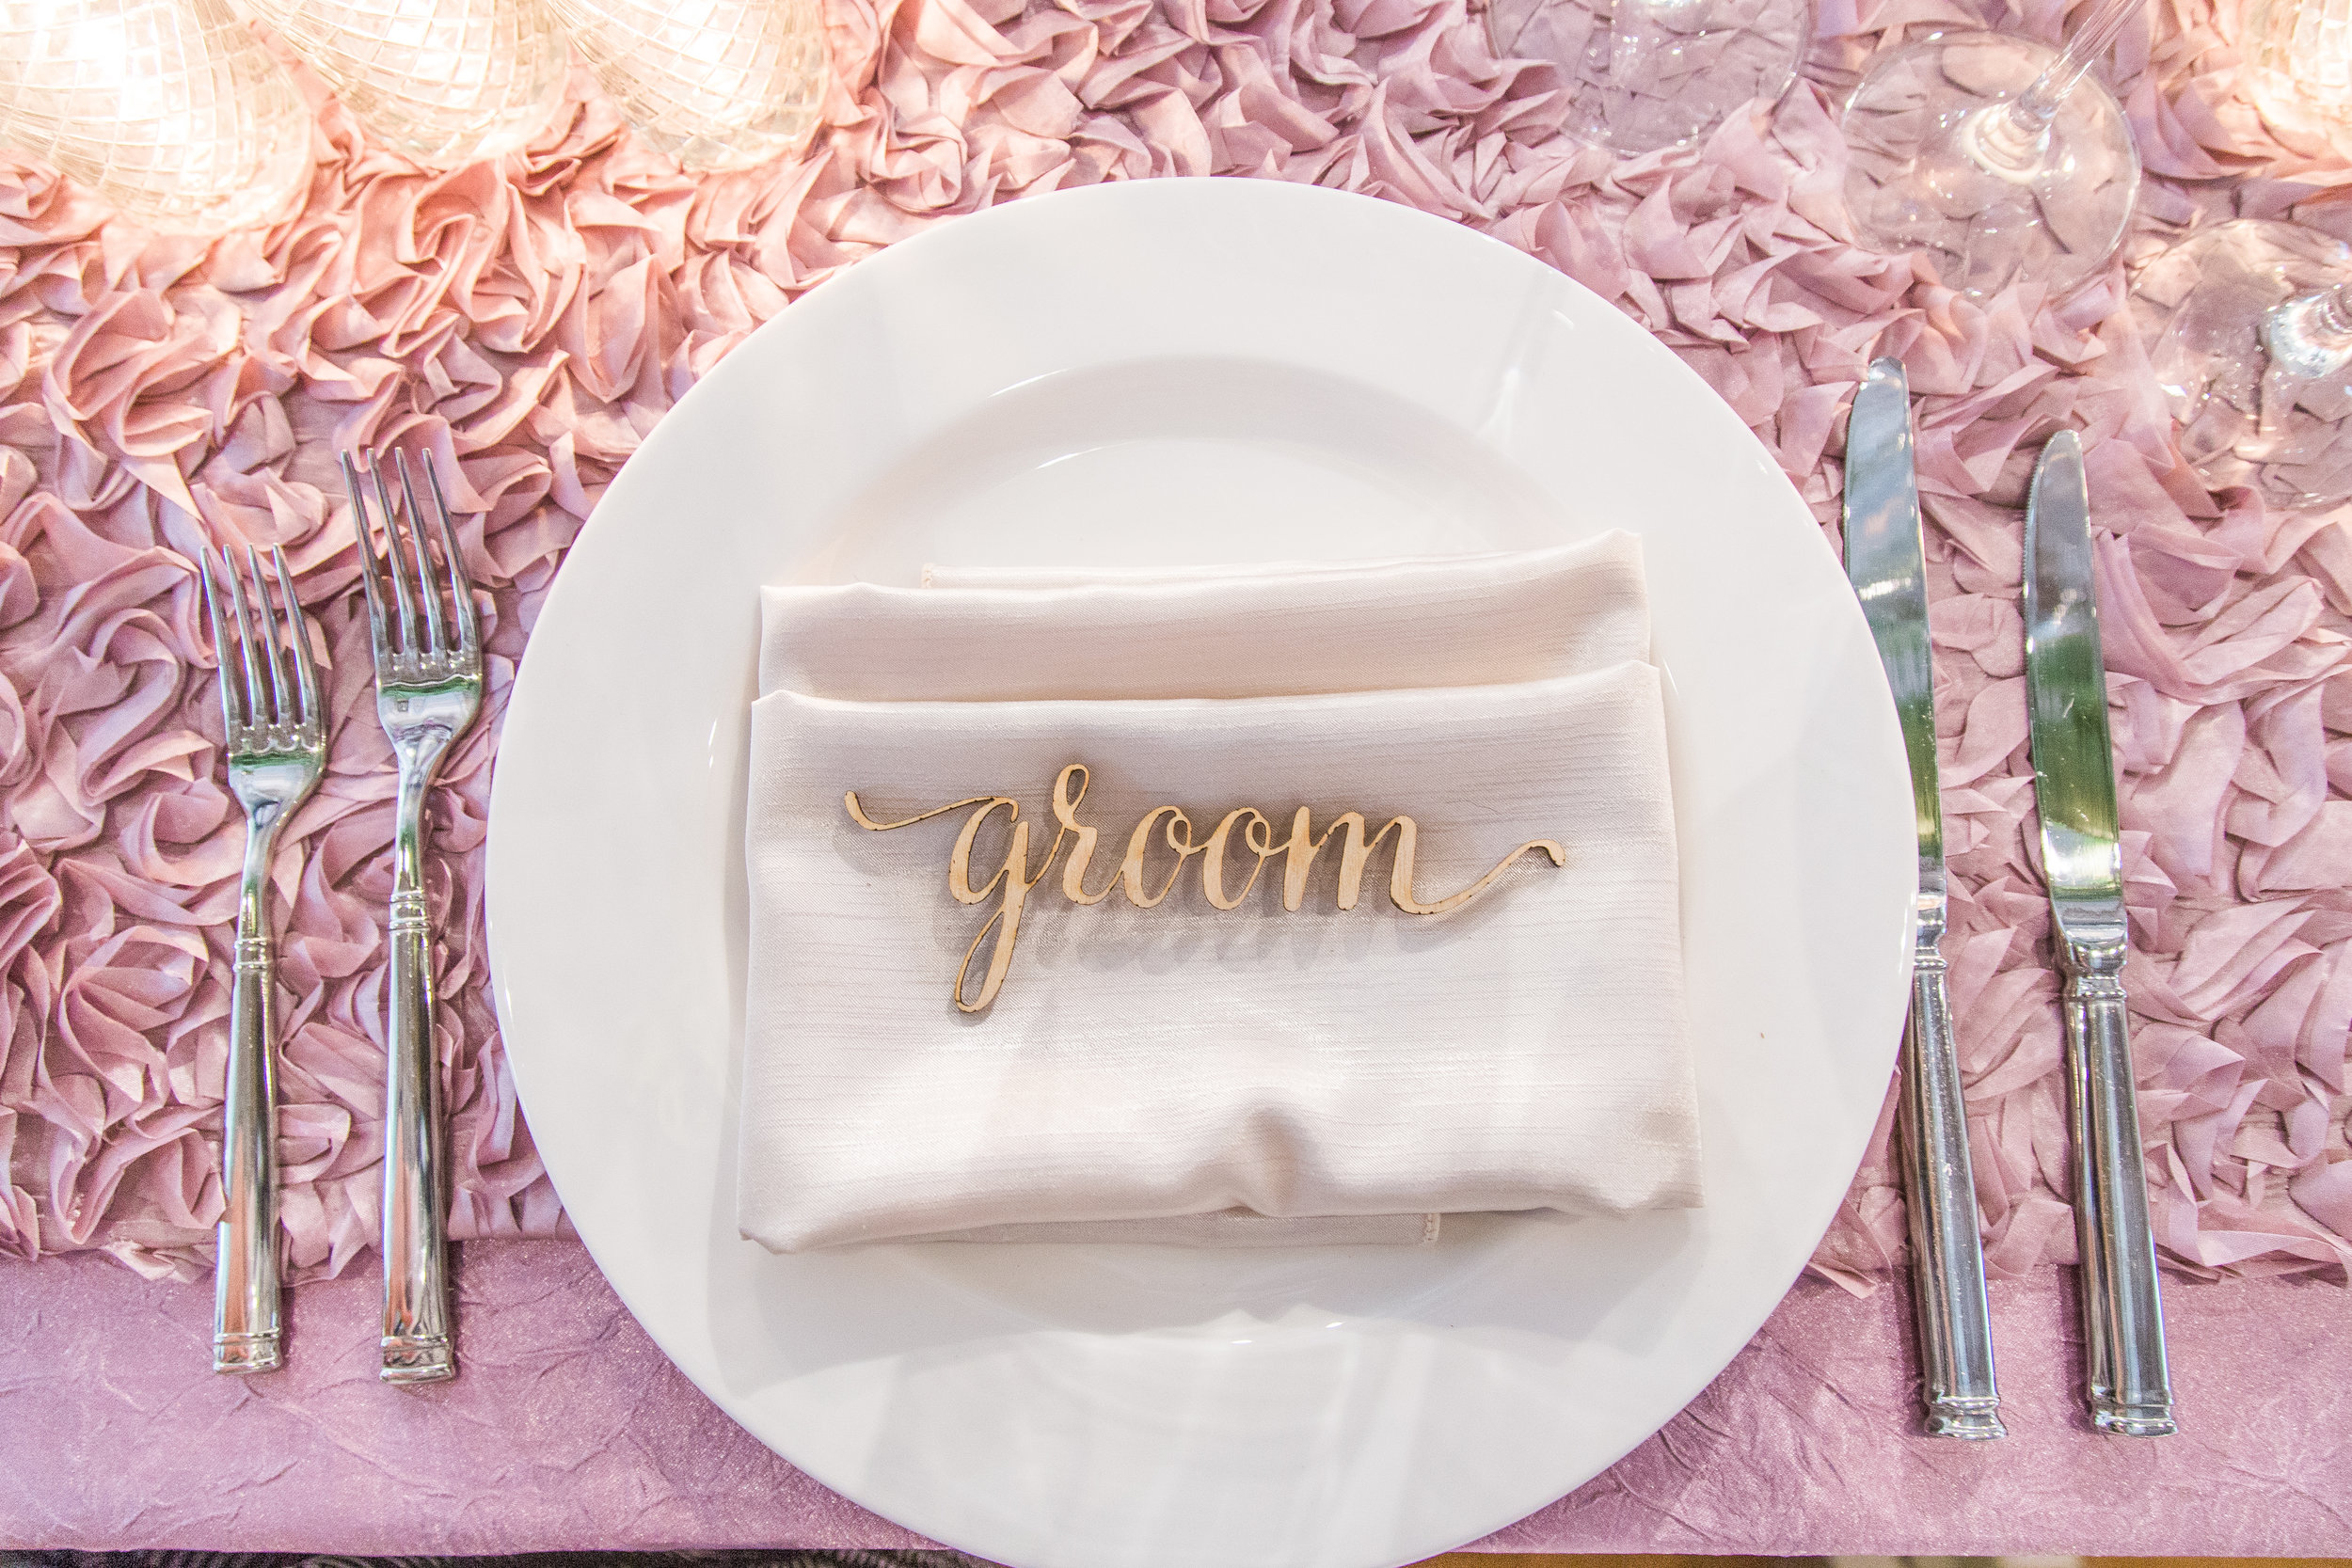 lilac, lavender _ periwinkle luxury wedding at cannon green charleston by scarlet plan _ design for revolution wedding tours (262).jpg